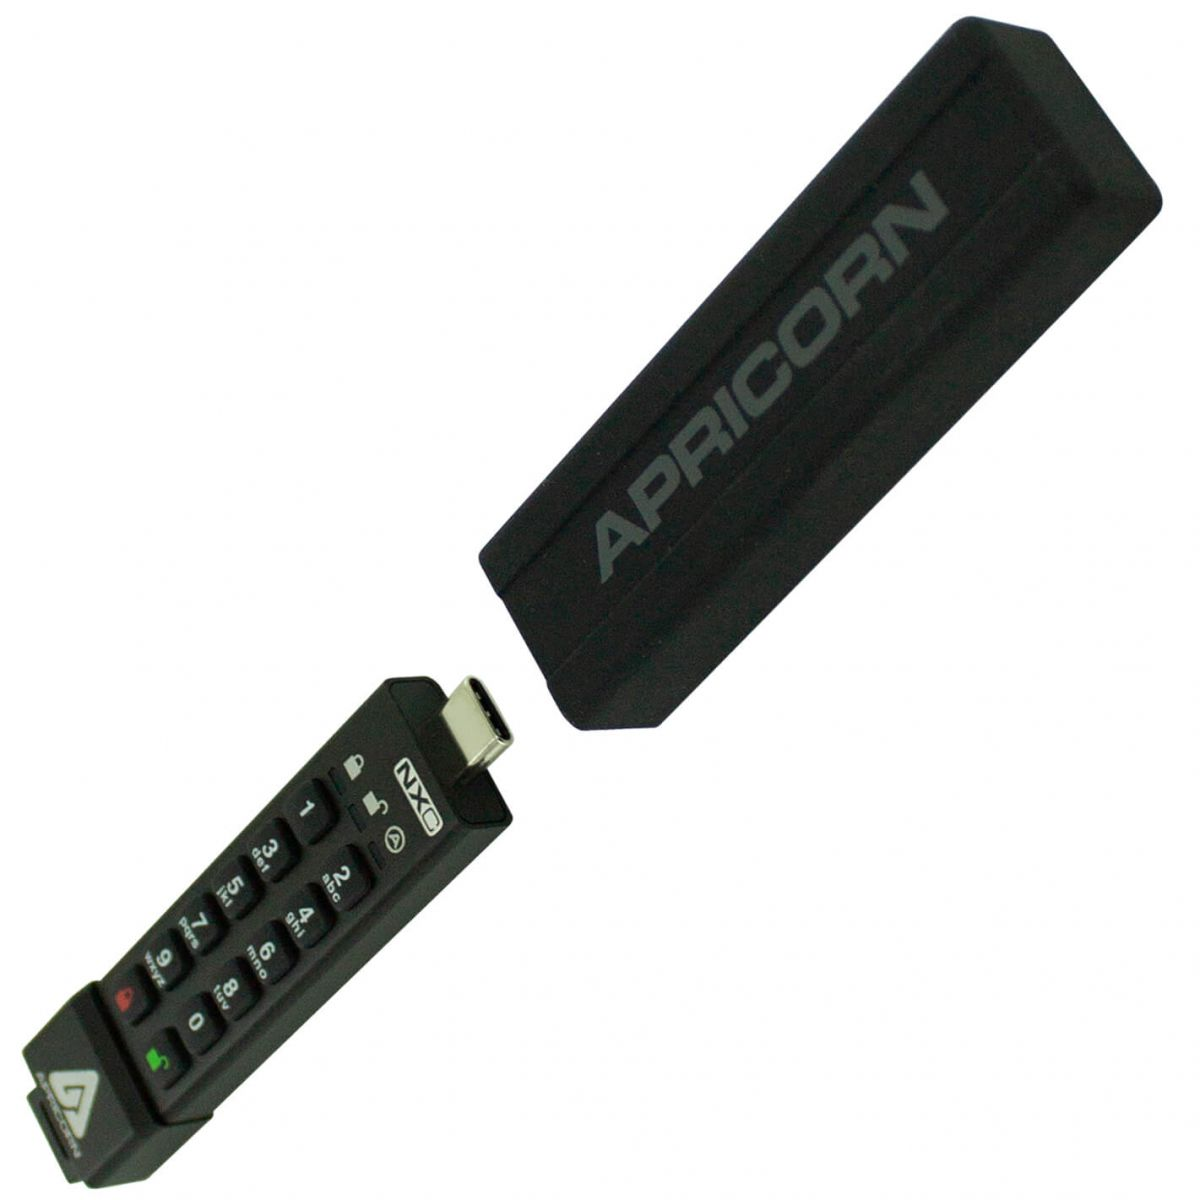 ask3nxc 64gb usbstick with usbc